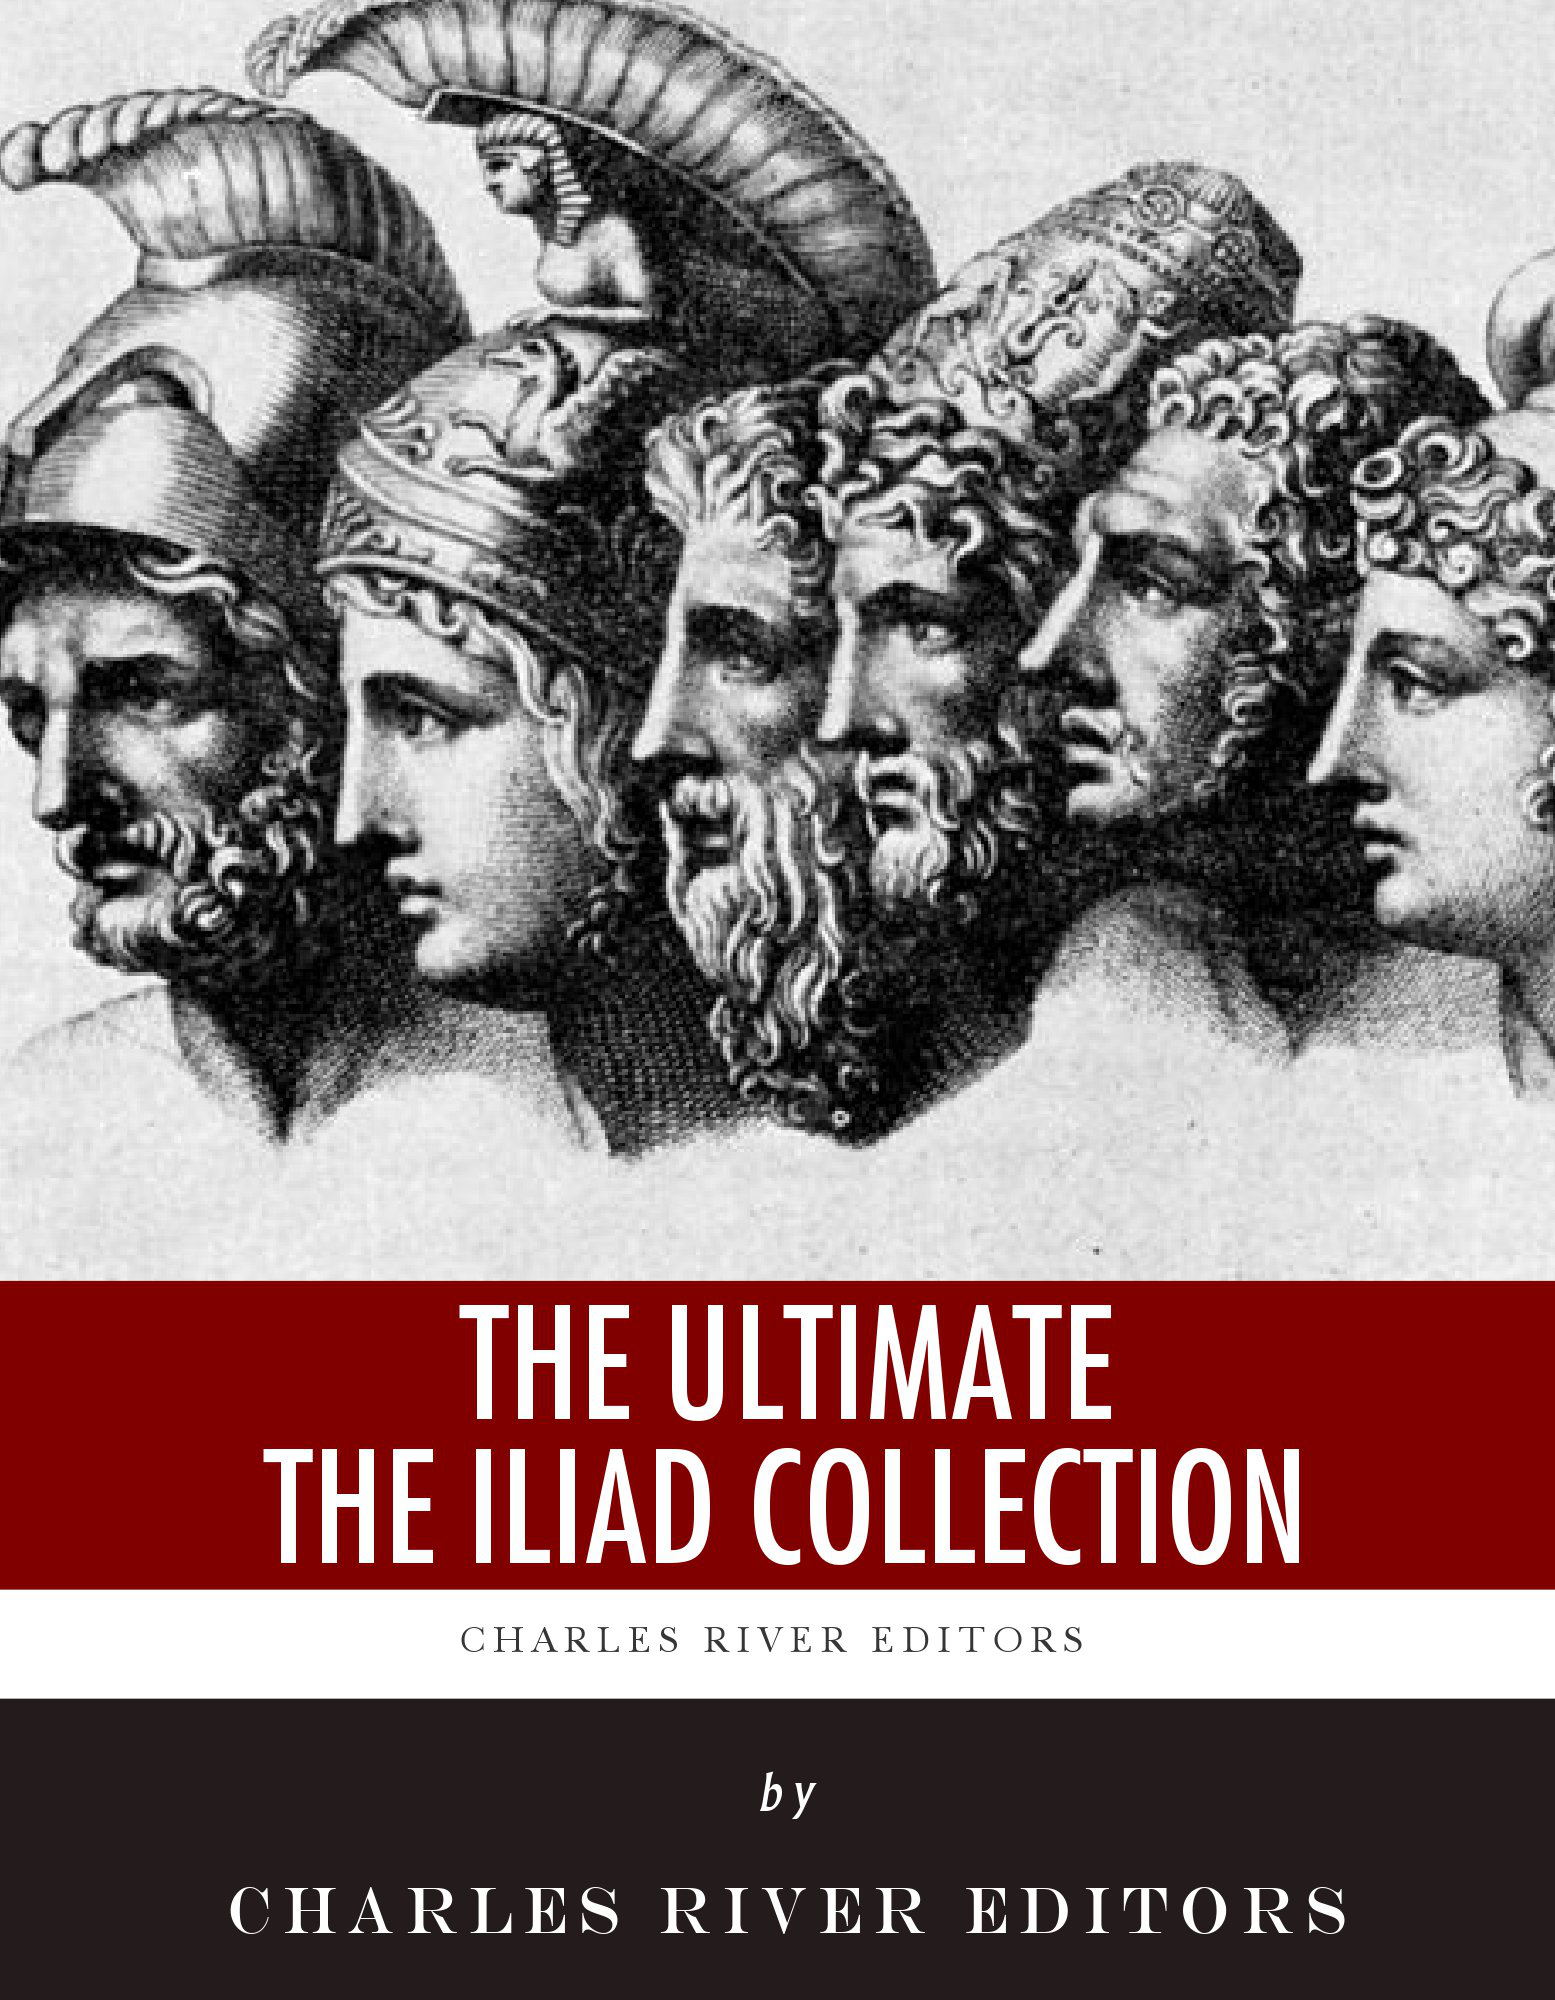 The Ultimate The Iliad Collection